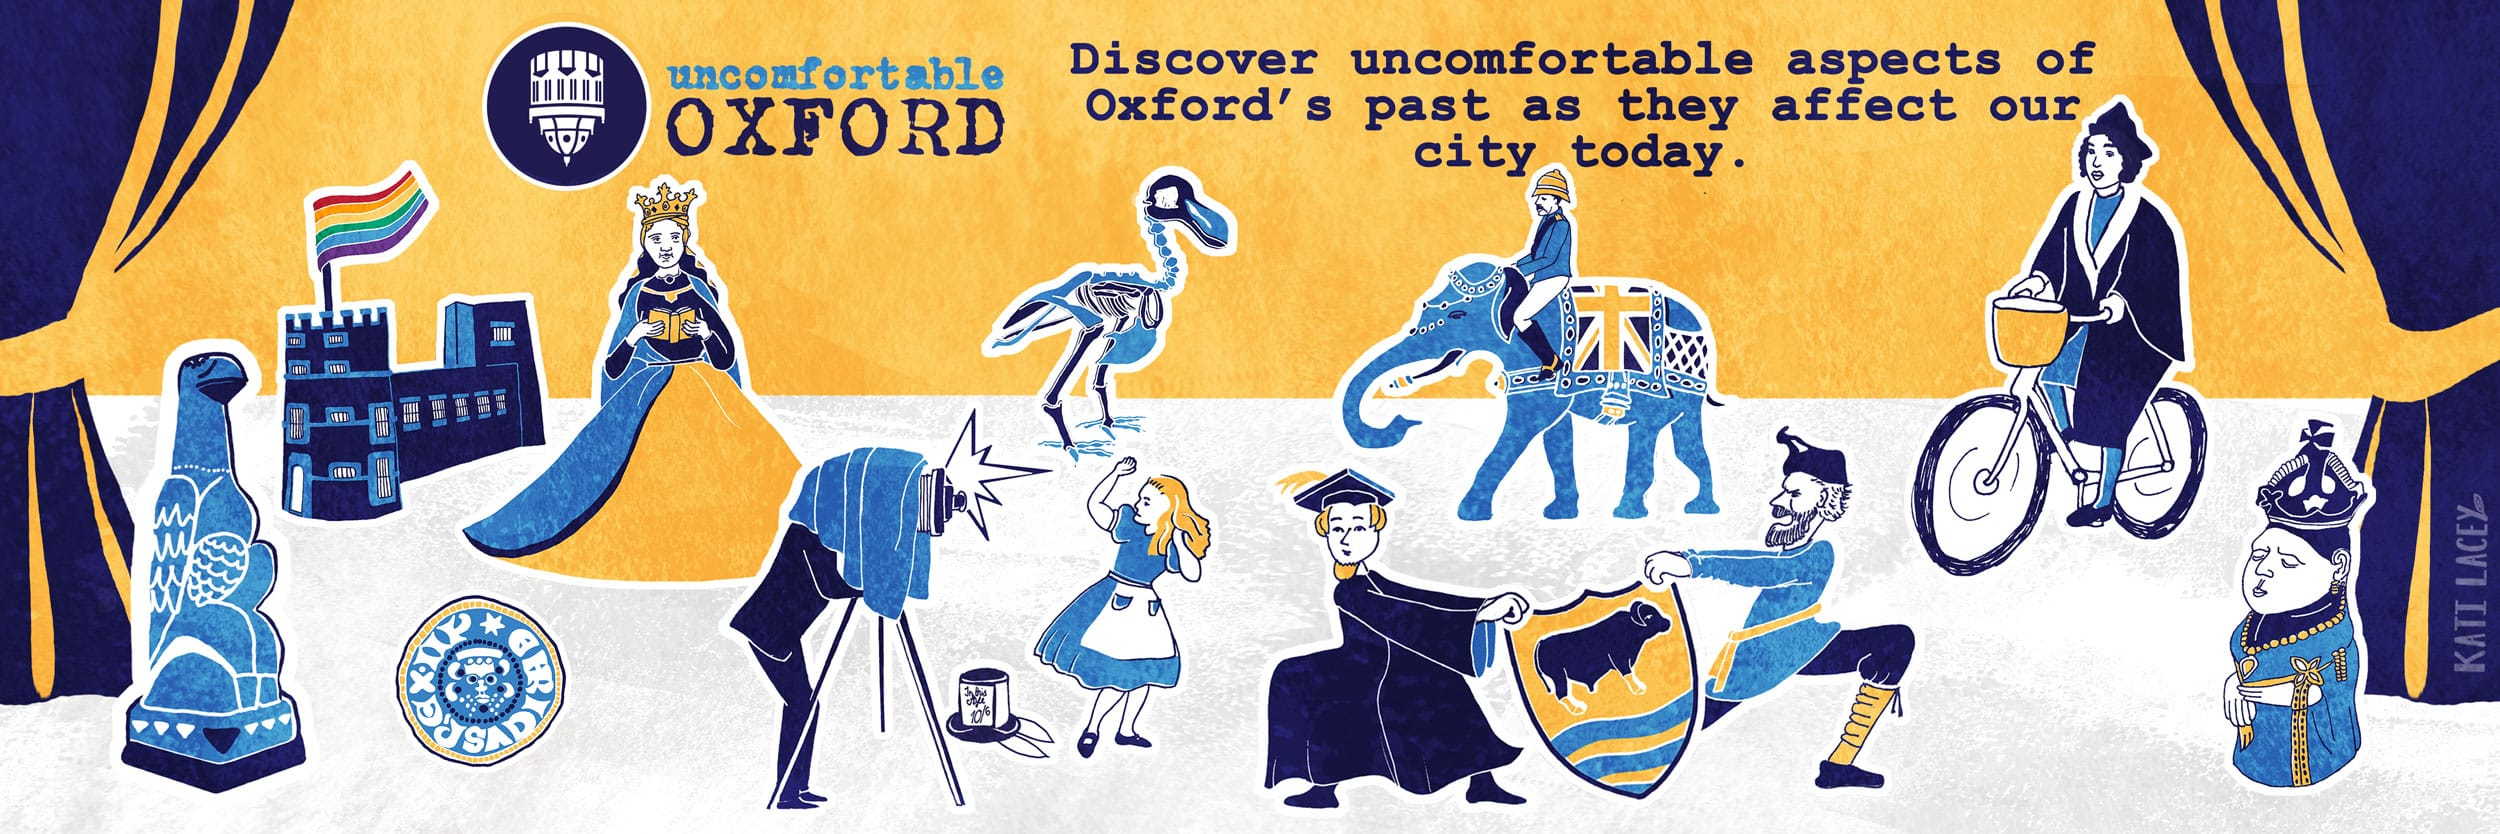 town-and-gown-divide-social-media-banner-illustration-uncomfortable-oxford-historical-figures-portraits-histories-stories drawn-kati-lacey-illustration